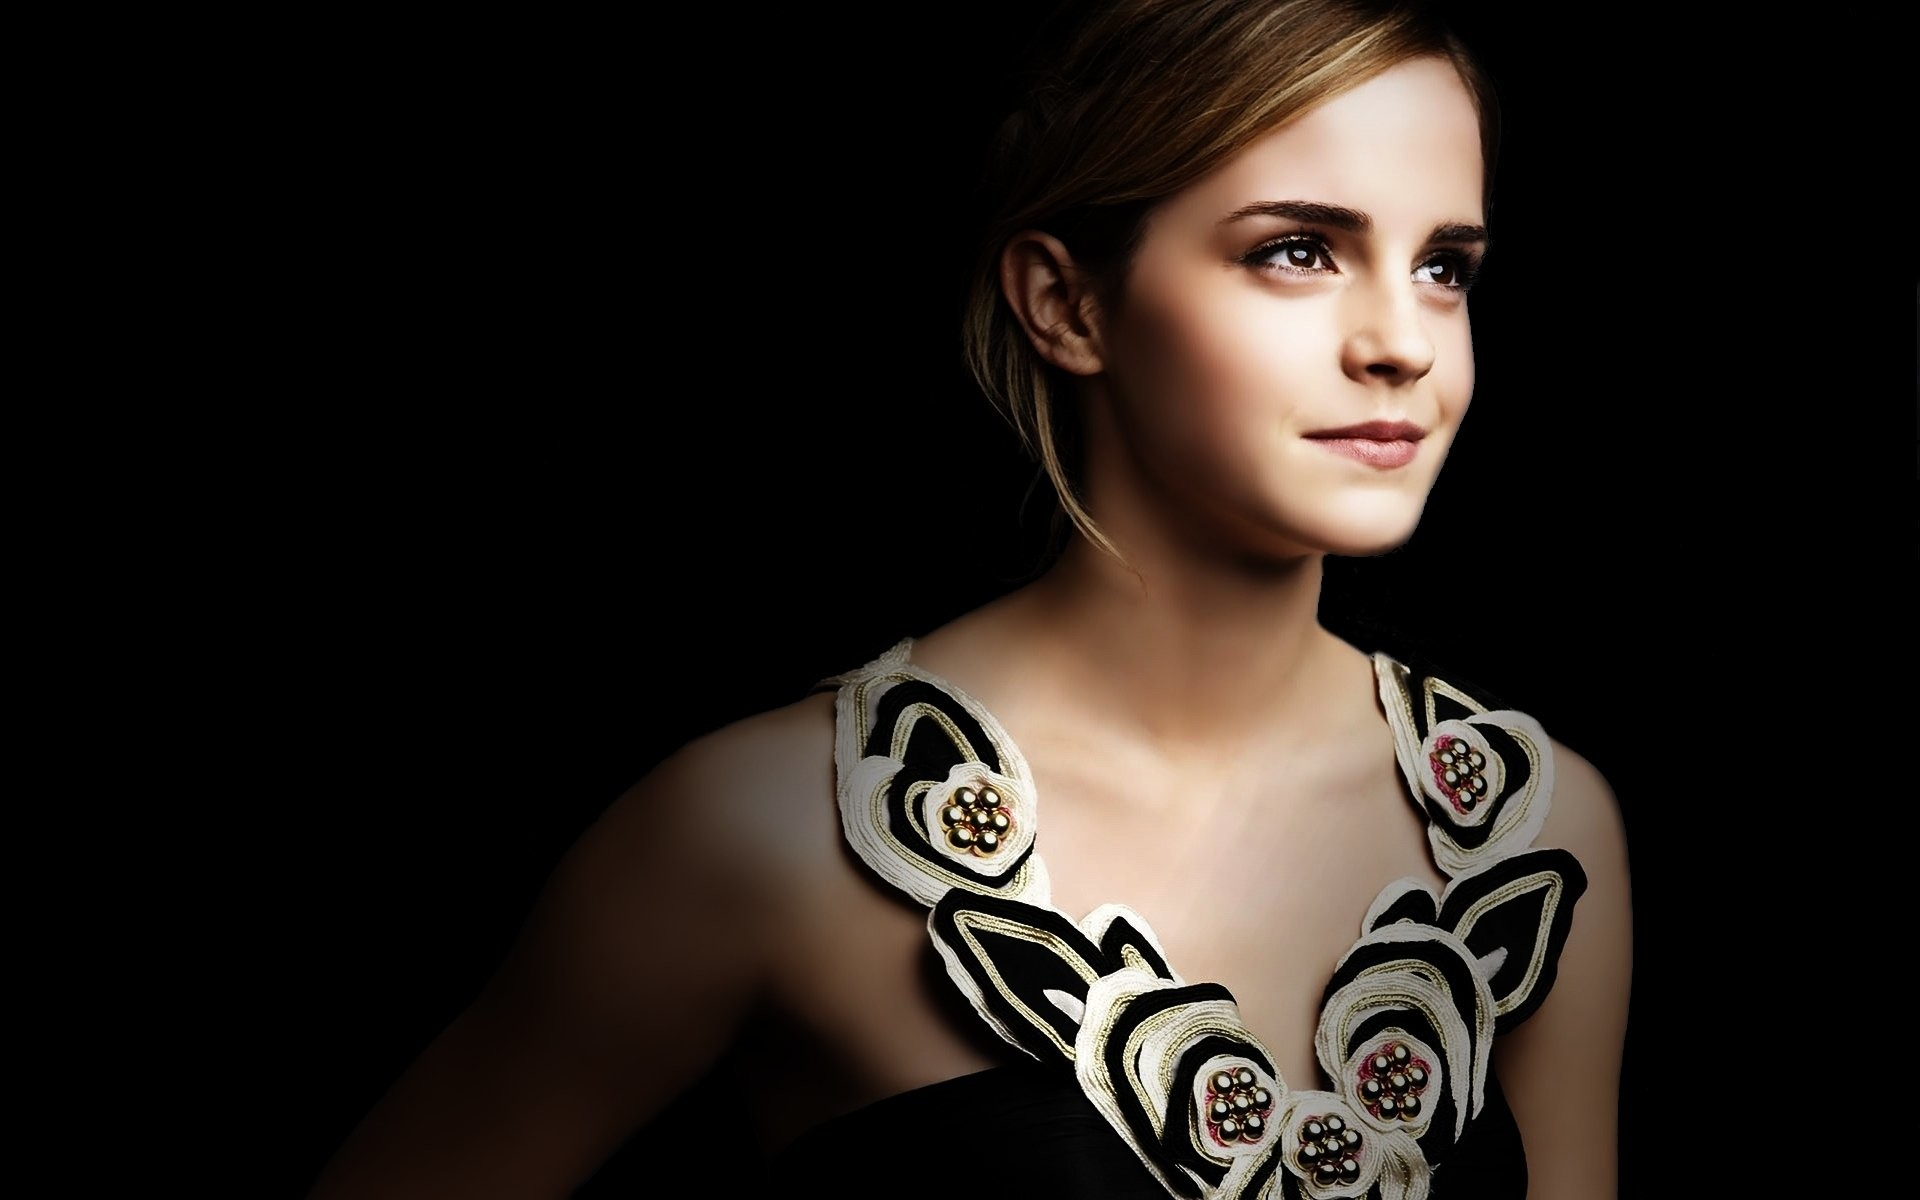 Emma Watson Hd Wallpapers 1080p 75 Images